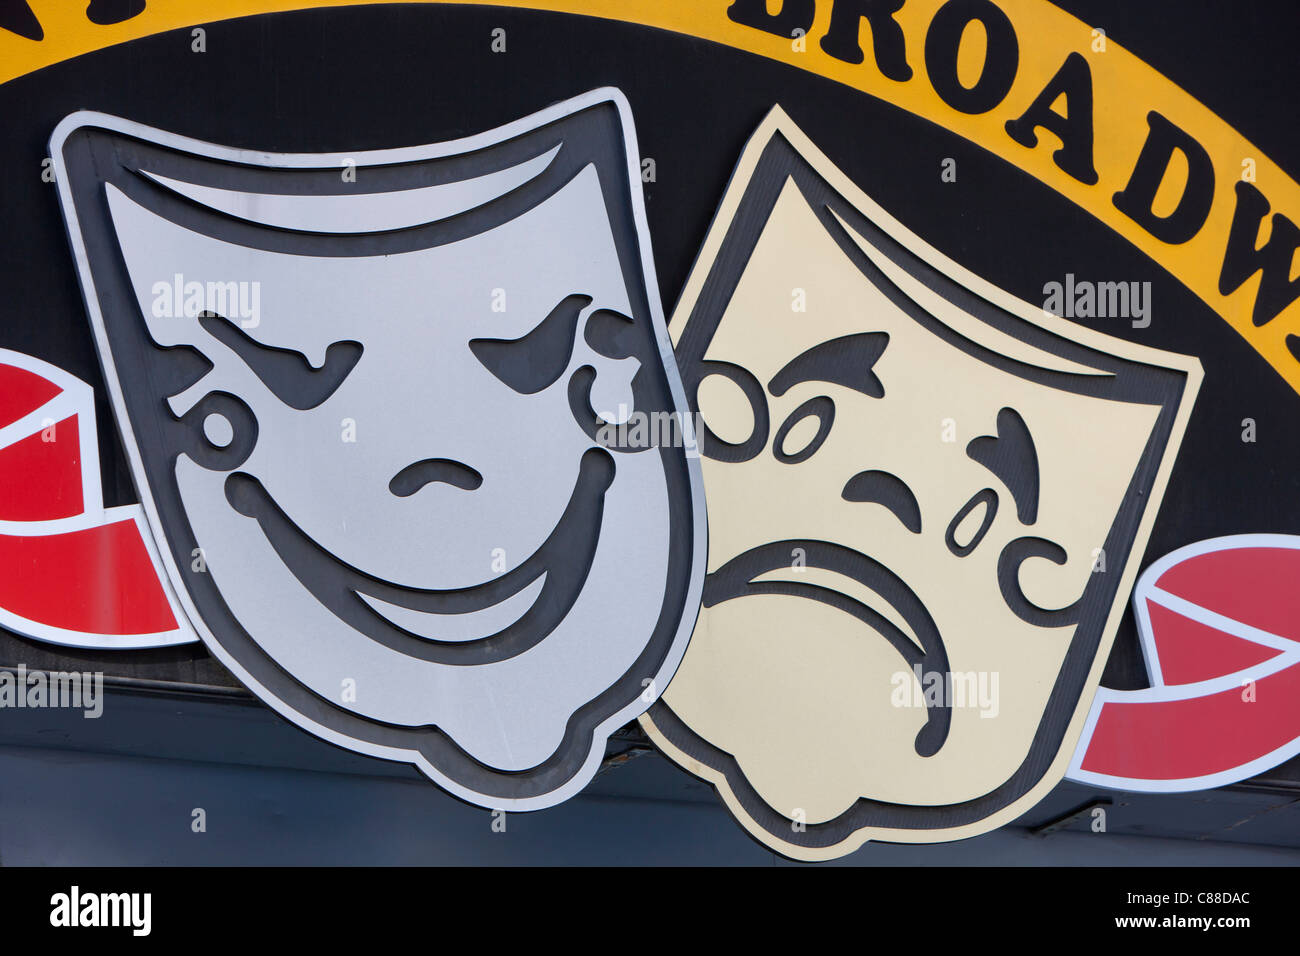 Comedy and Tragedy masks on a sign in New York City - Stock Image